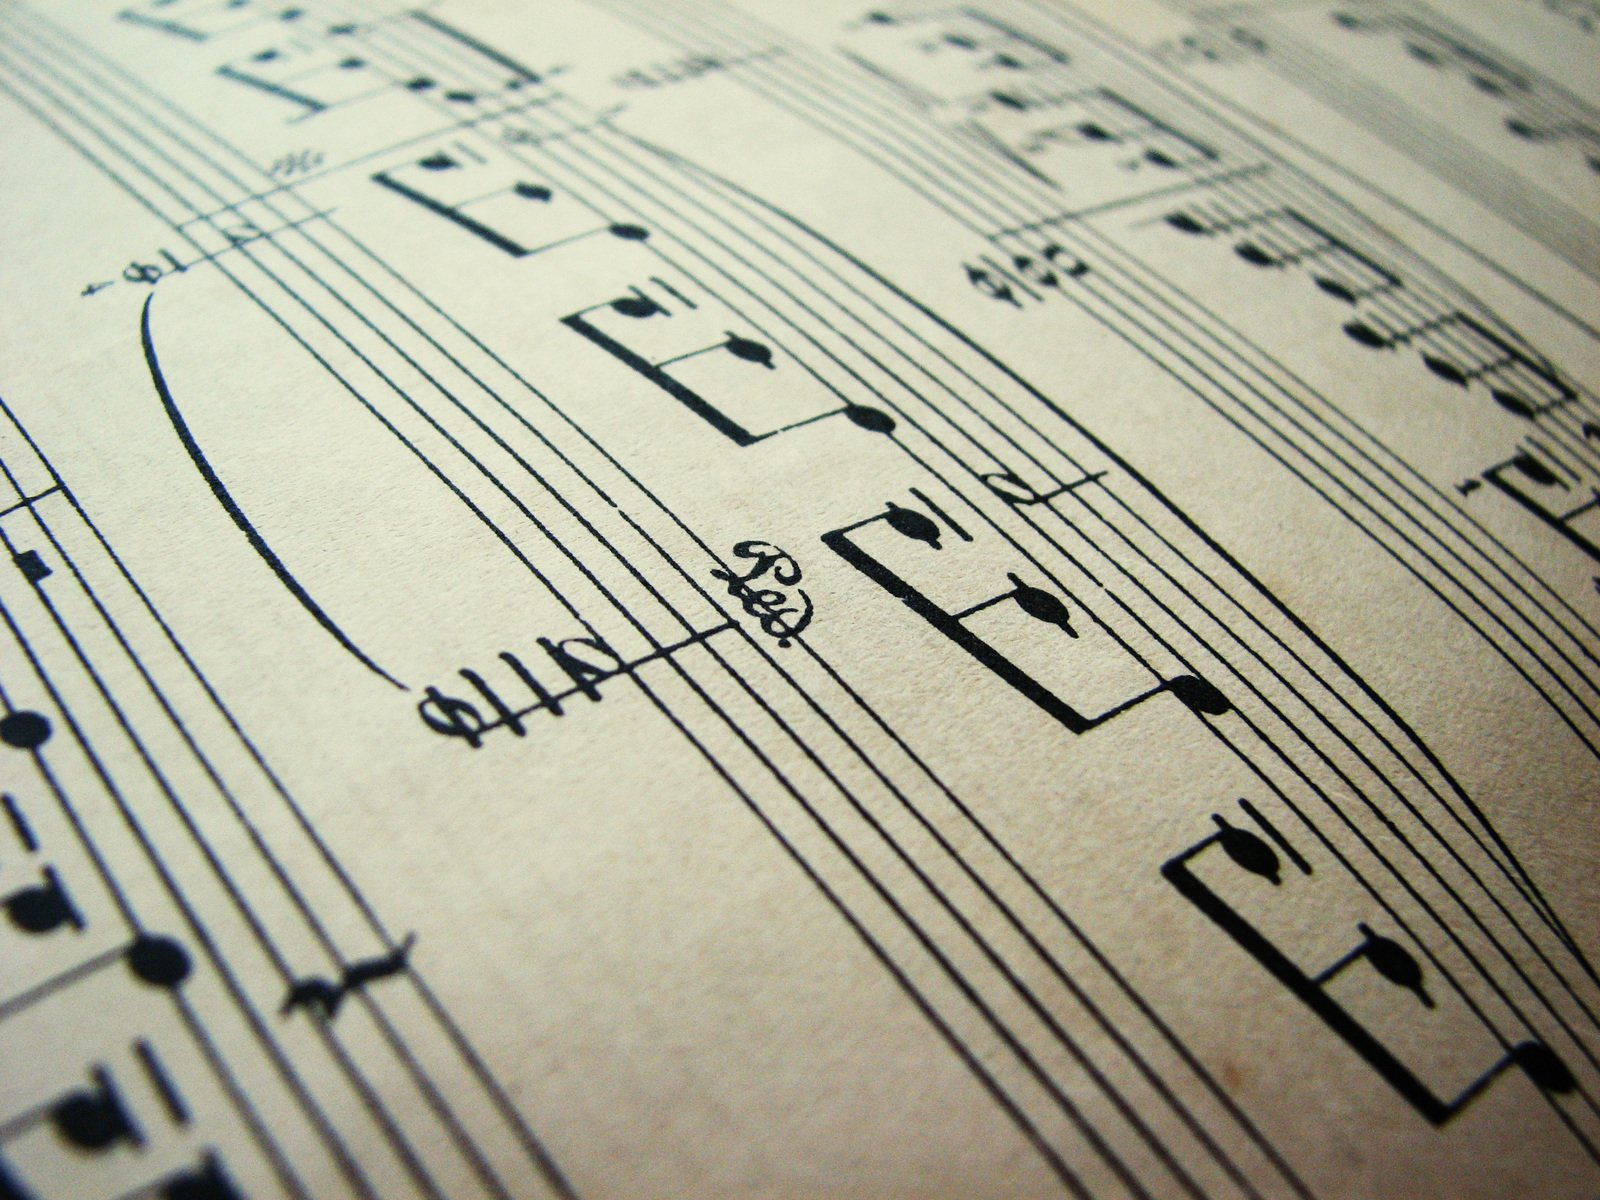 Free Music notes 2 Stock Photo - FreeImages com